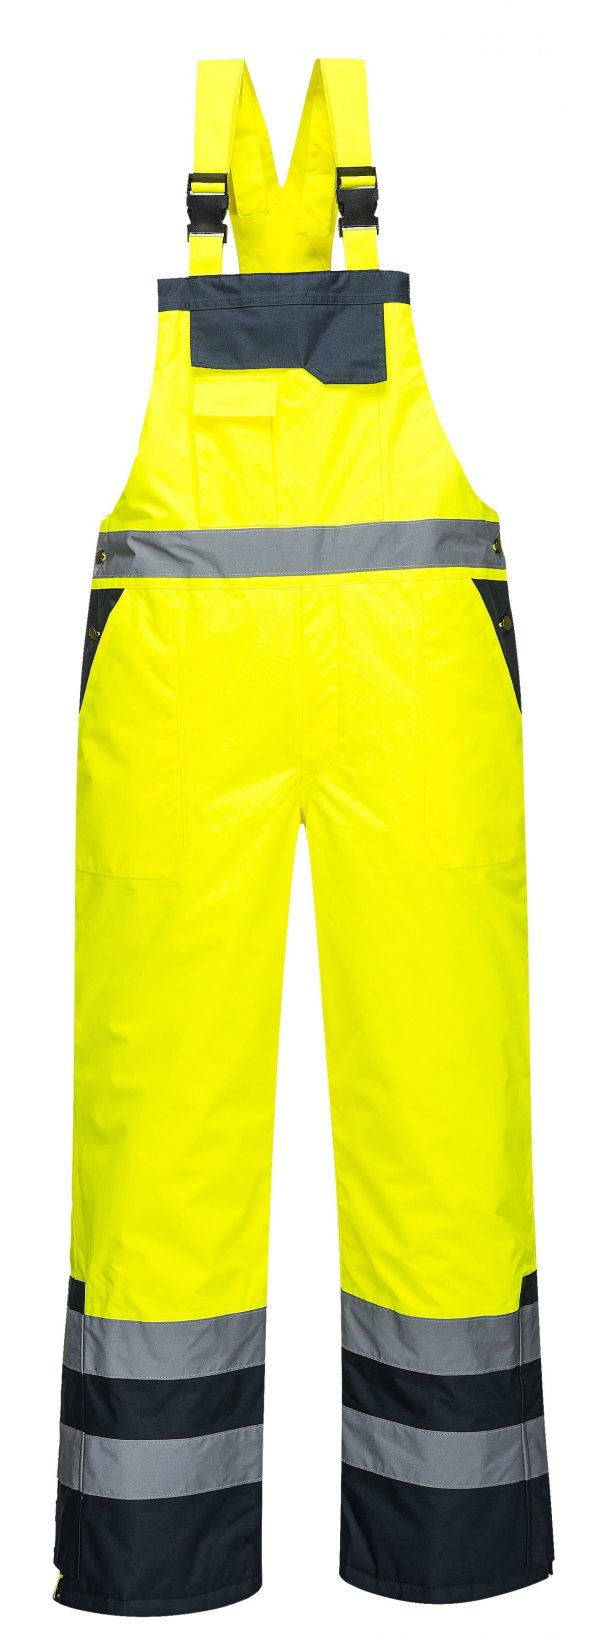 Portwest S489 Thermal Lined High Visibility Snow Bib, Back